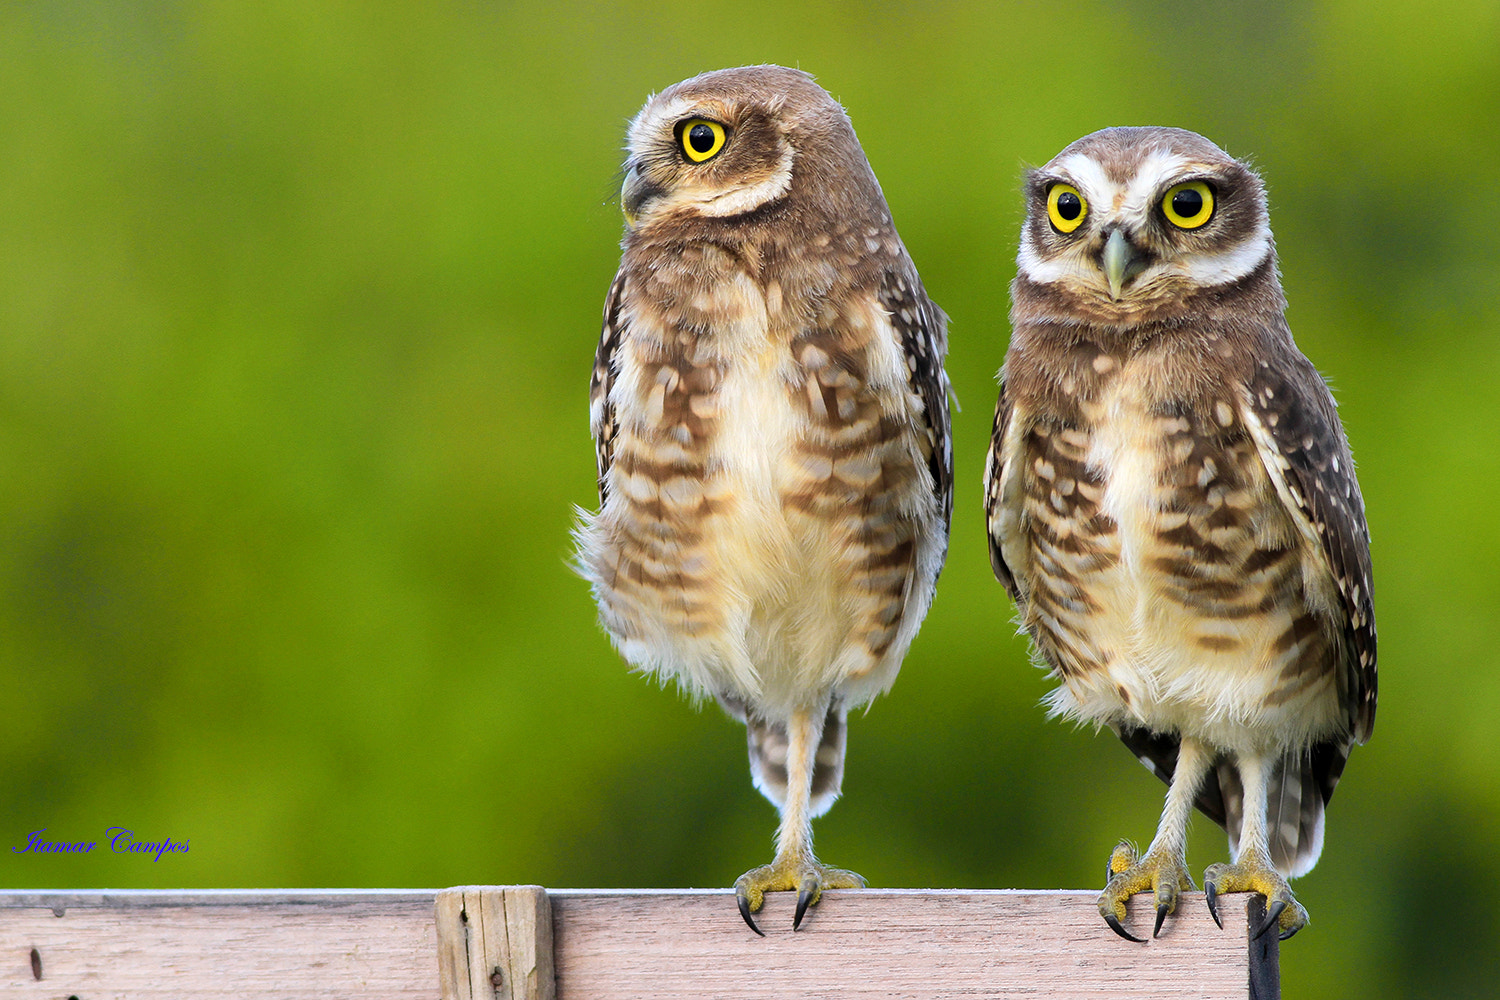 Photograph Three eyes and three feet! by Itamar Campos on 500px